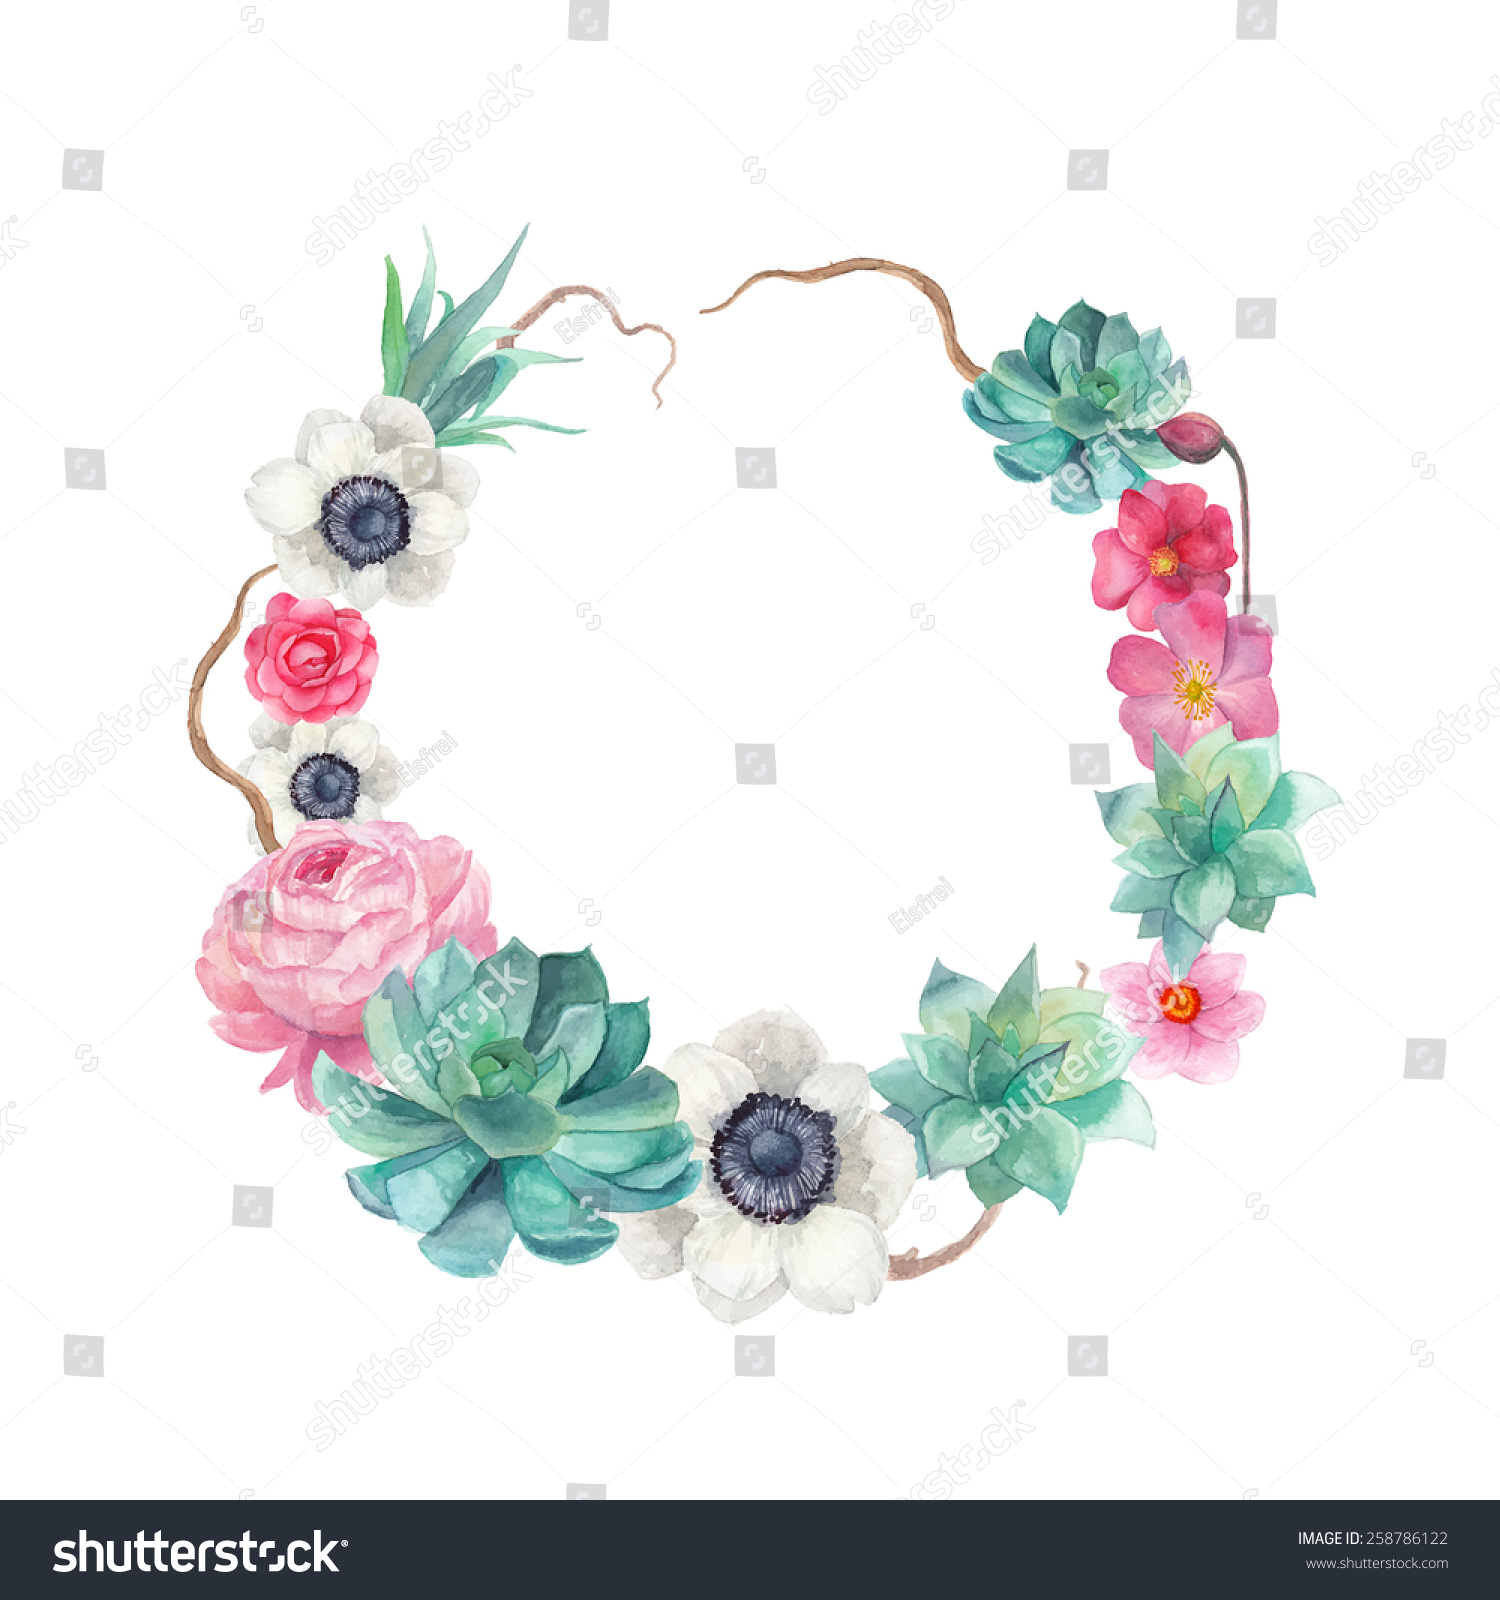 Round frame with decorative branch vector illustration stock -  Vectors Illustrations Footage Music Watercolor Succulents And Flowers Wreath Vintage Round Frame With Tree Branch Peony Roses